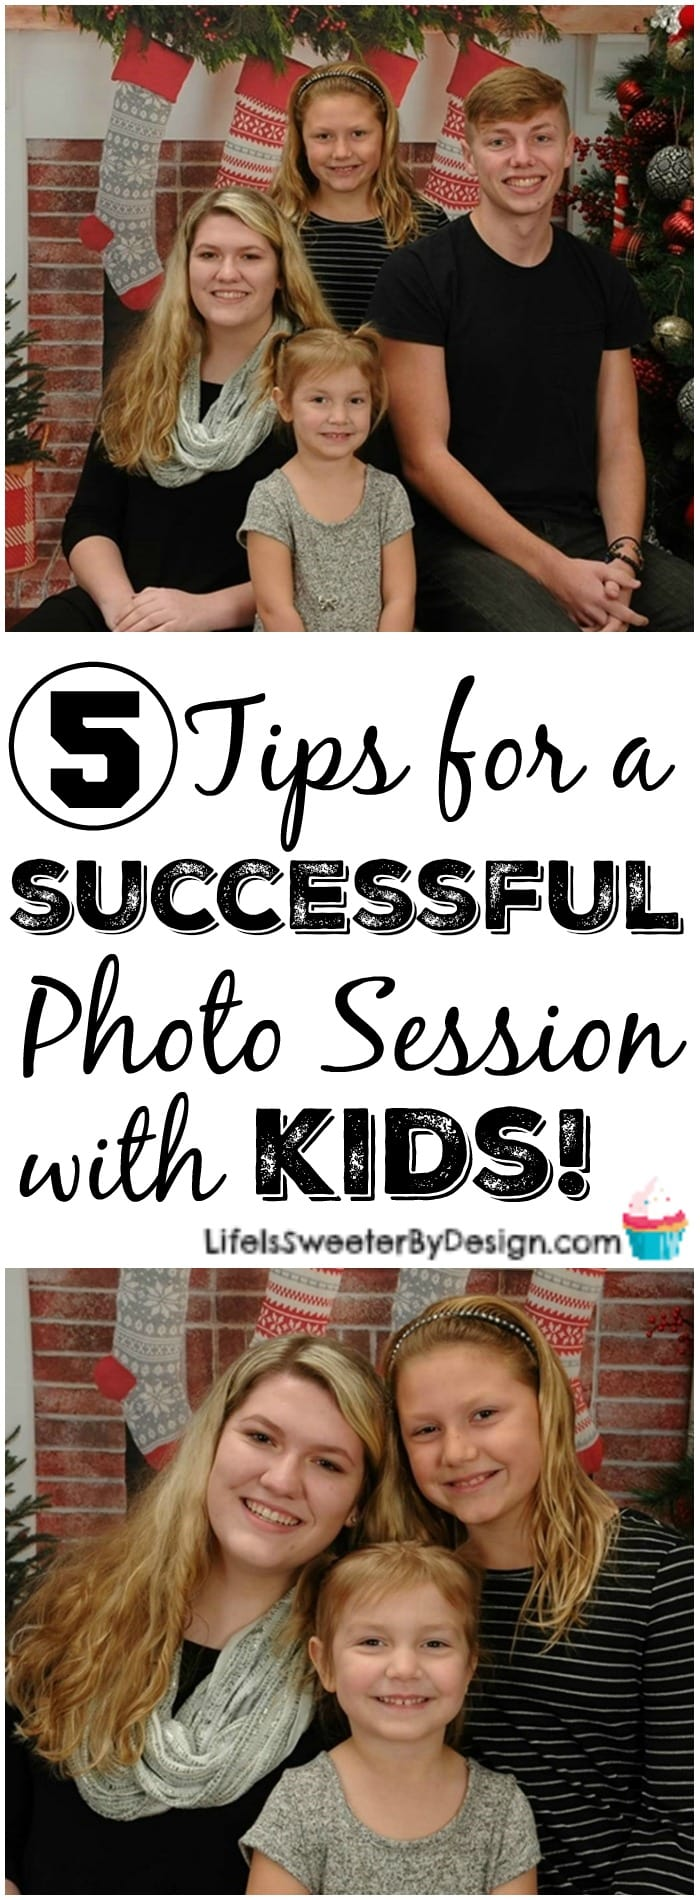 5-tips-for-a-successful-photo-session-with-kids-pin